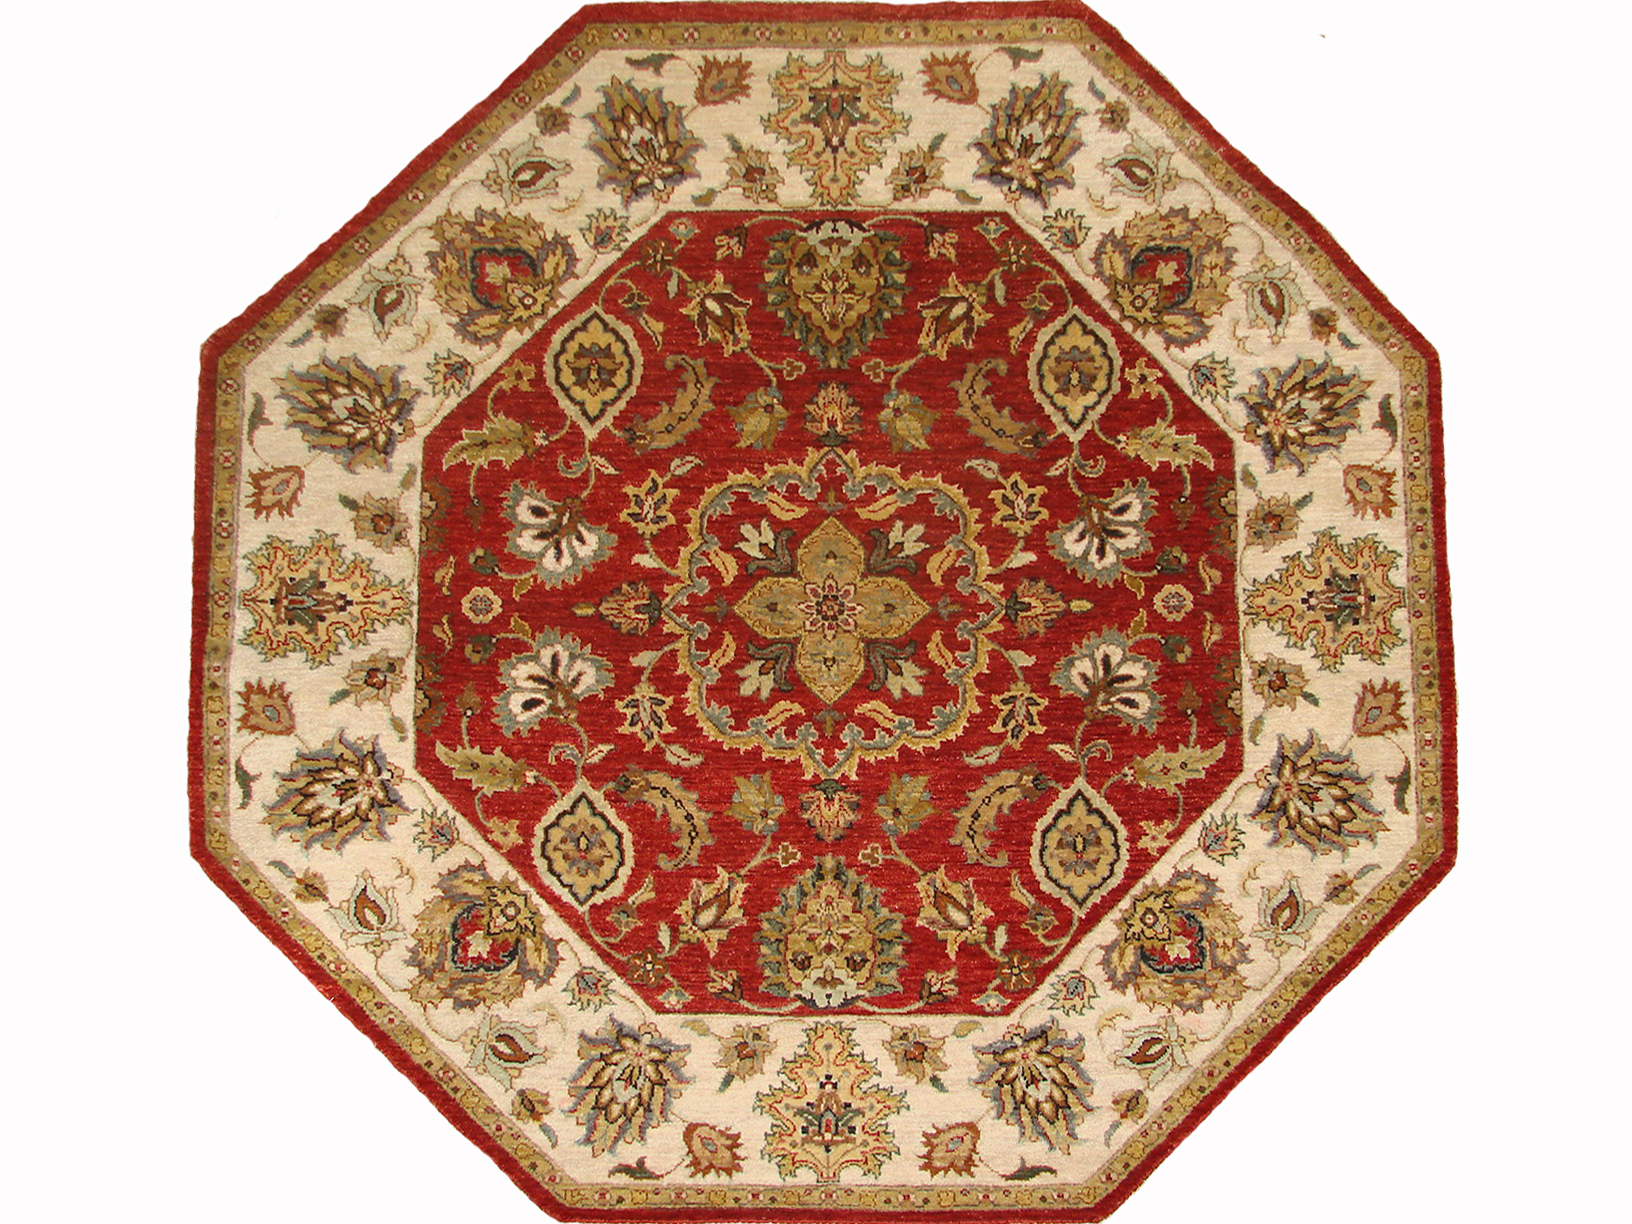 5 ft. Round & Square Traditional Hand Knotted Wool Area Rug - MR18751